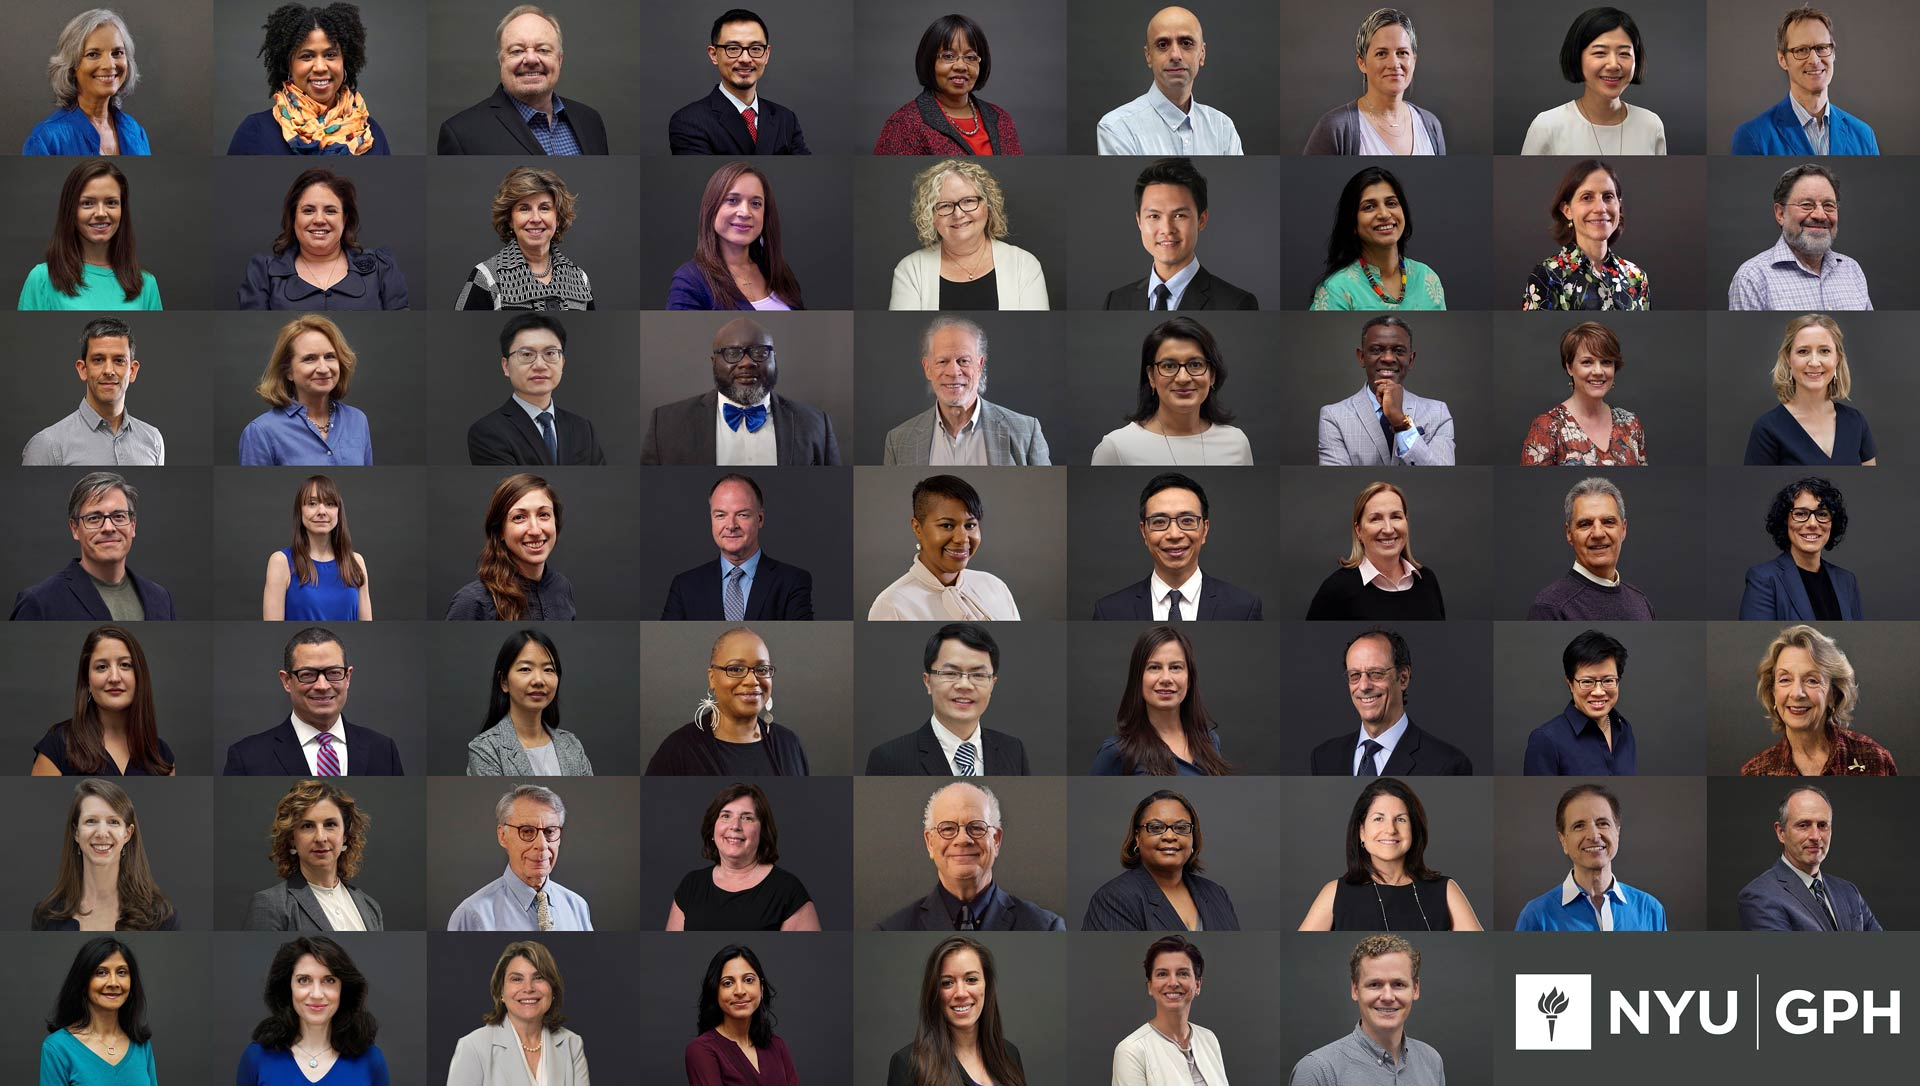 NYU GPH Faculty Photos